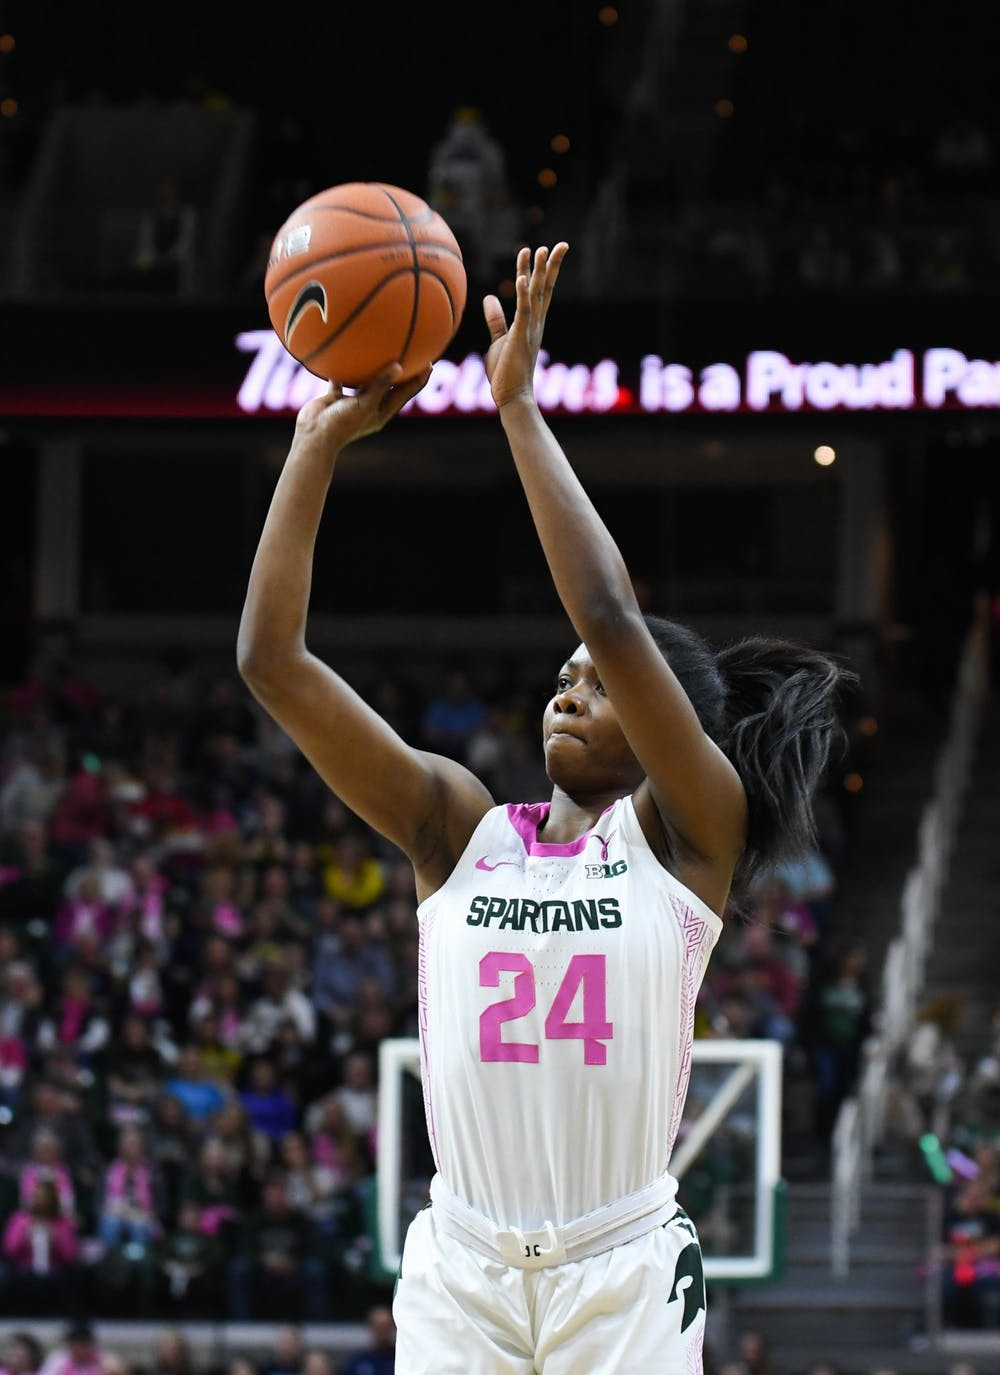 Sophomore guard Nia Clouden (24) takes a shot during the women's basketball game against Michigan at the Breslin Center on February 23, 2020. The Spartans fell to the Wolverines 65-57.